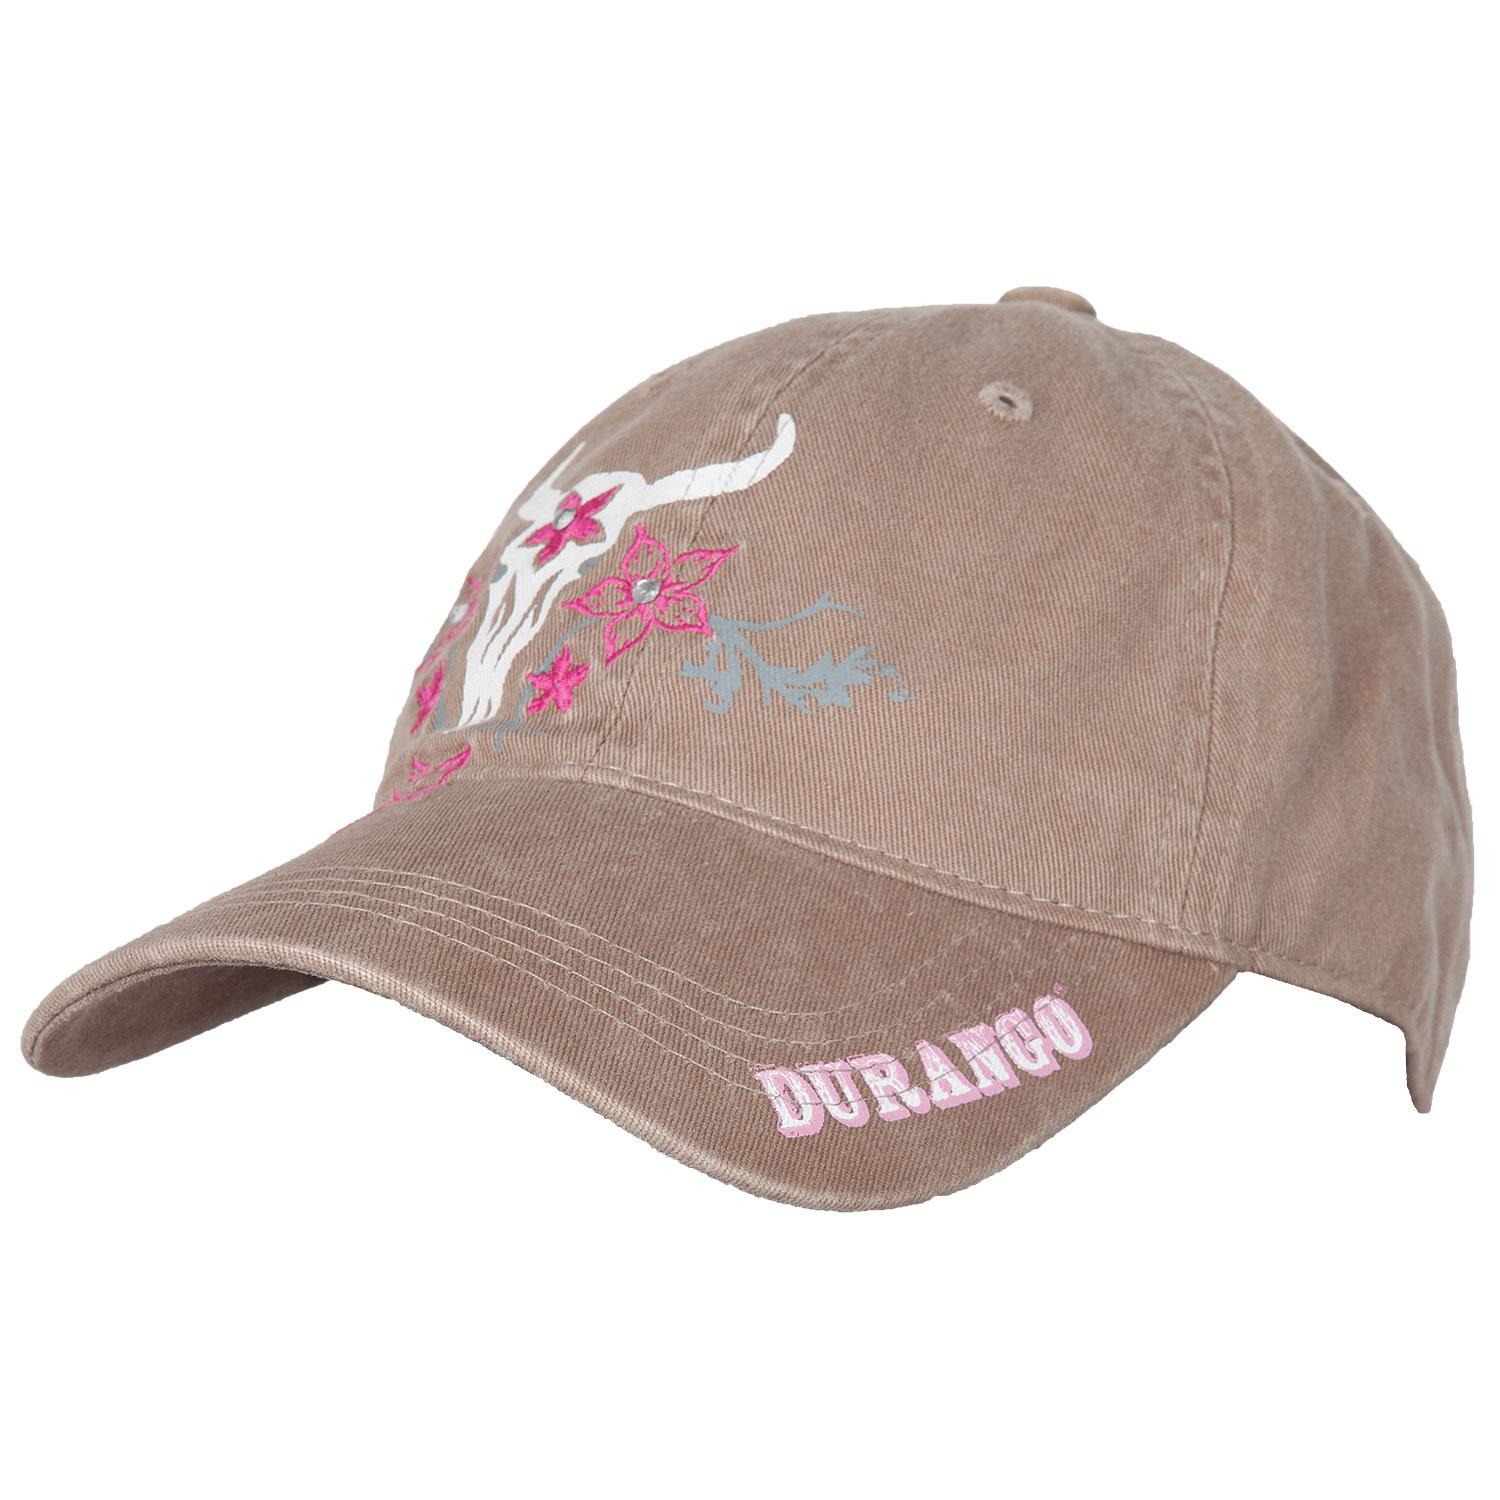 Women s Cow Skull Tan Cap with Flowers 53f2a4104a